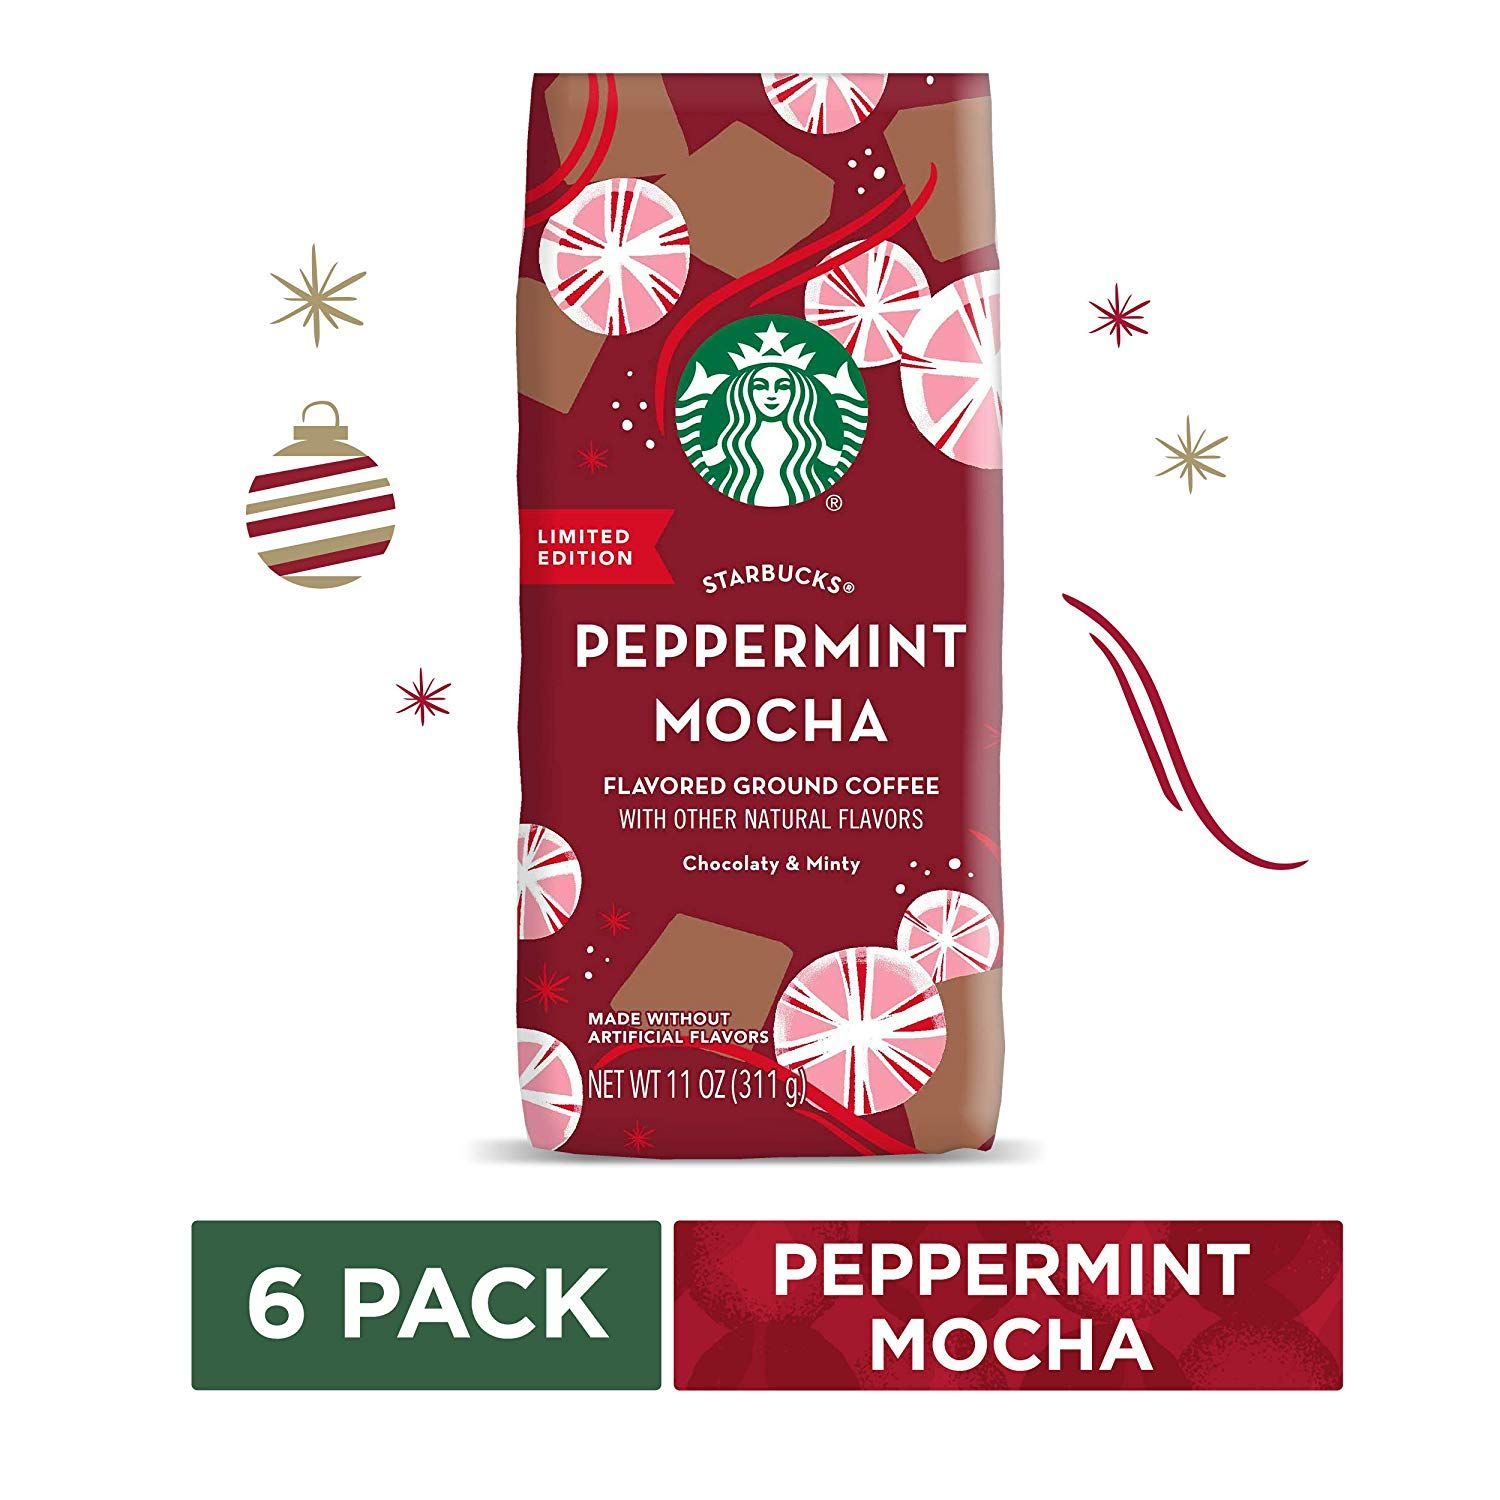 Holiday flavor starbucks peppermint mocha is rich and